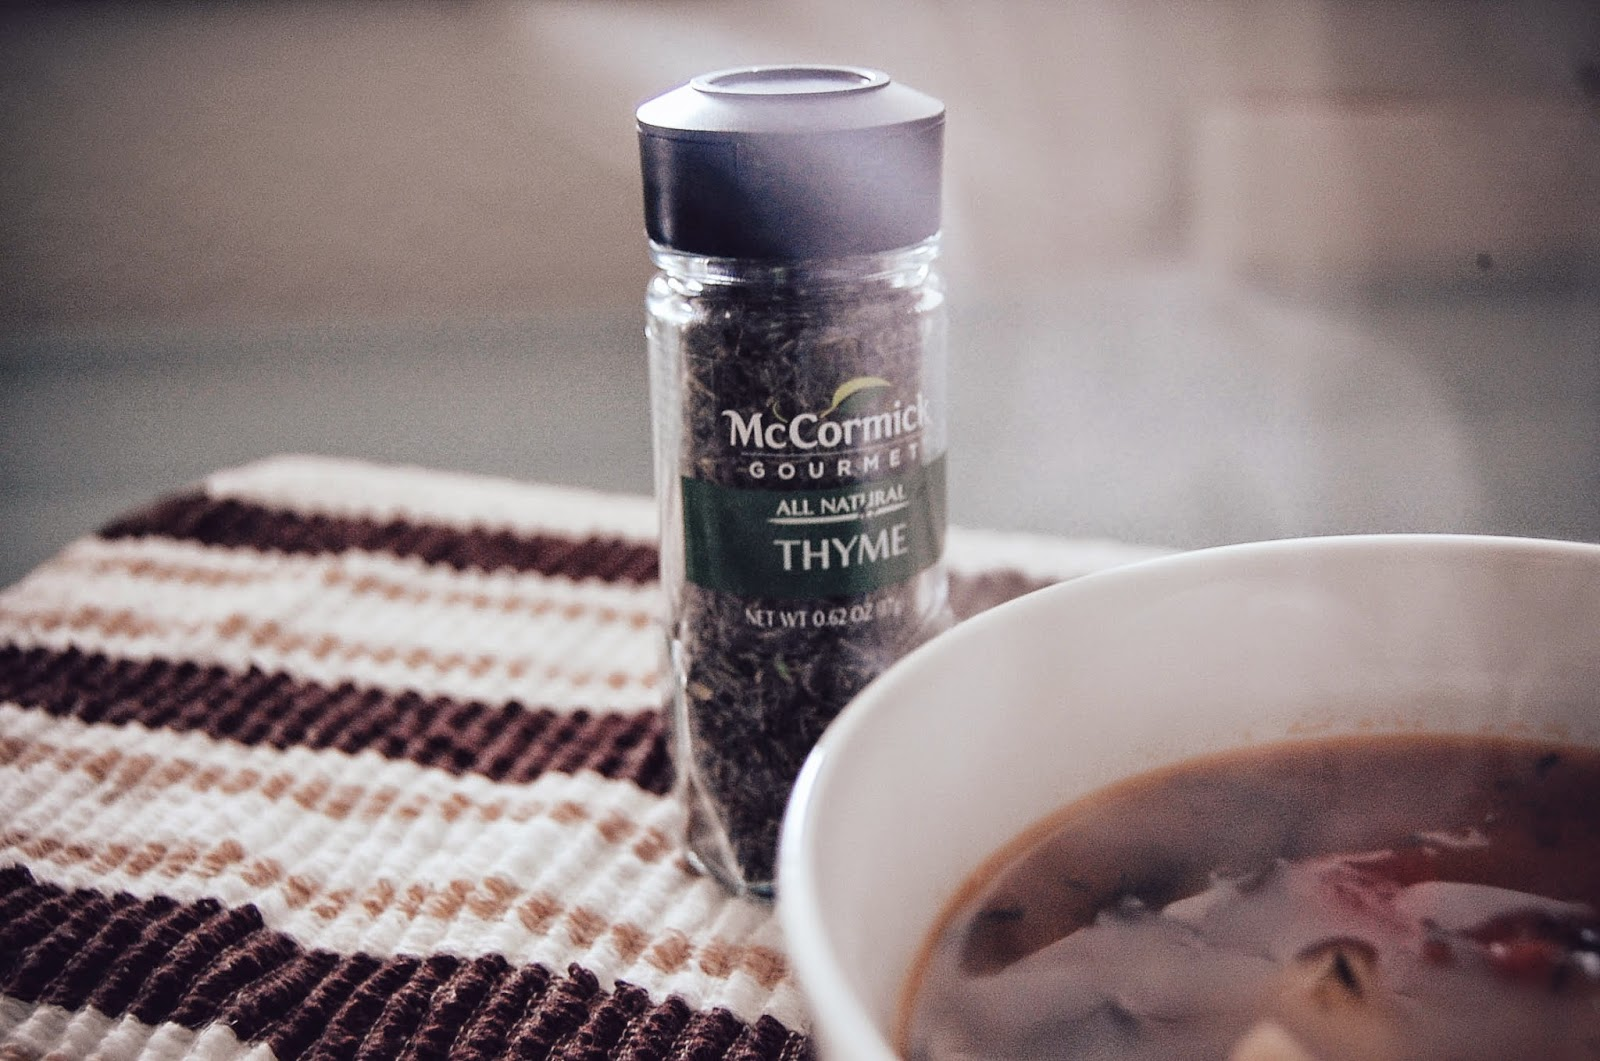 McCormick Thyme and soup